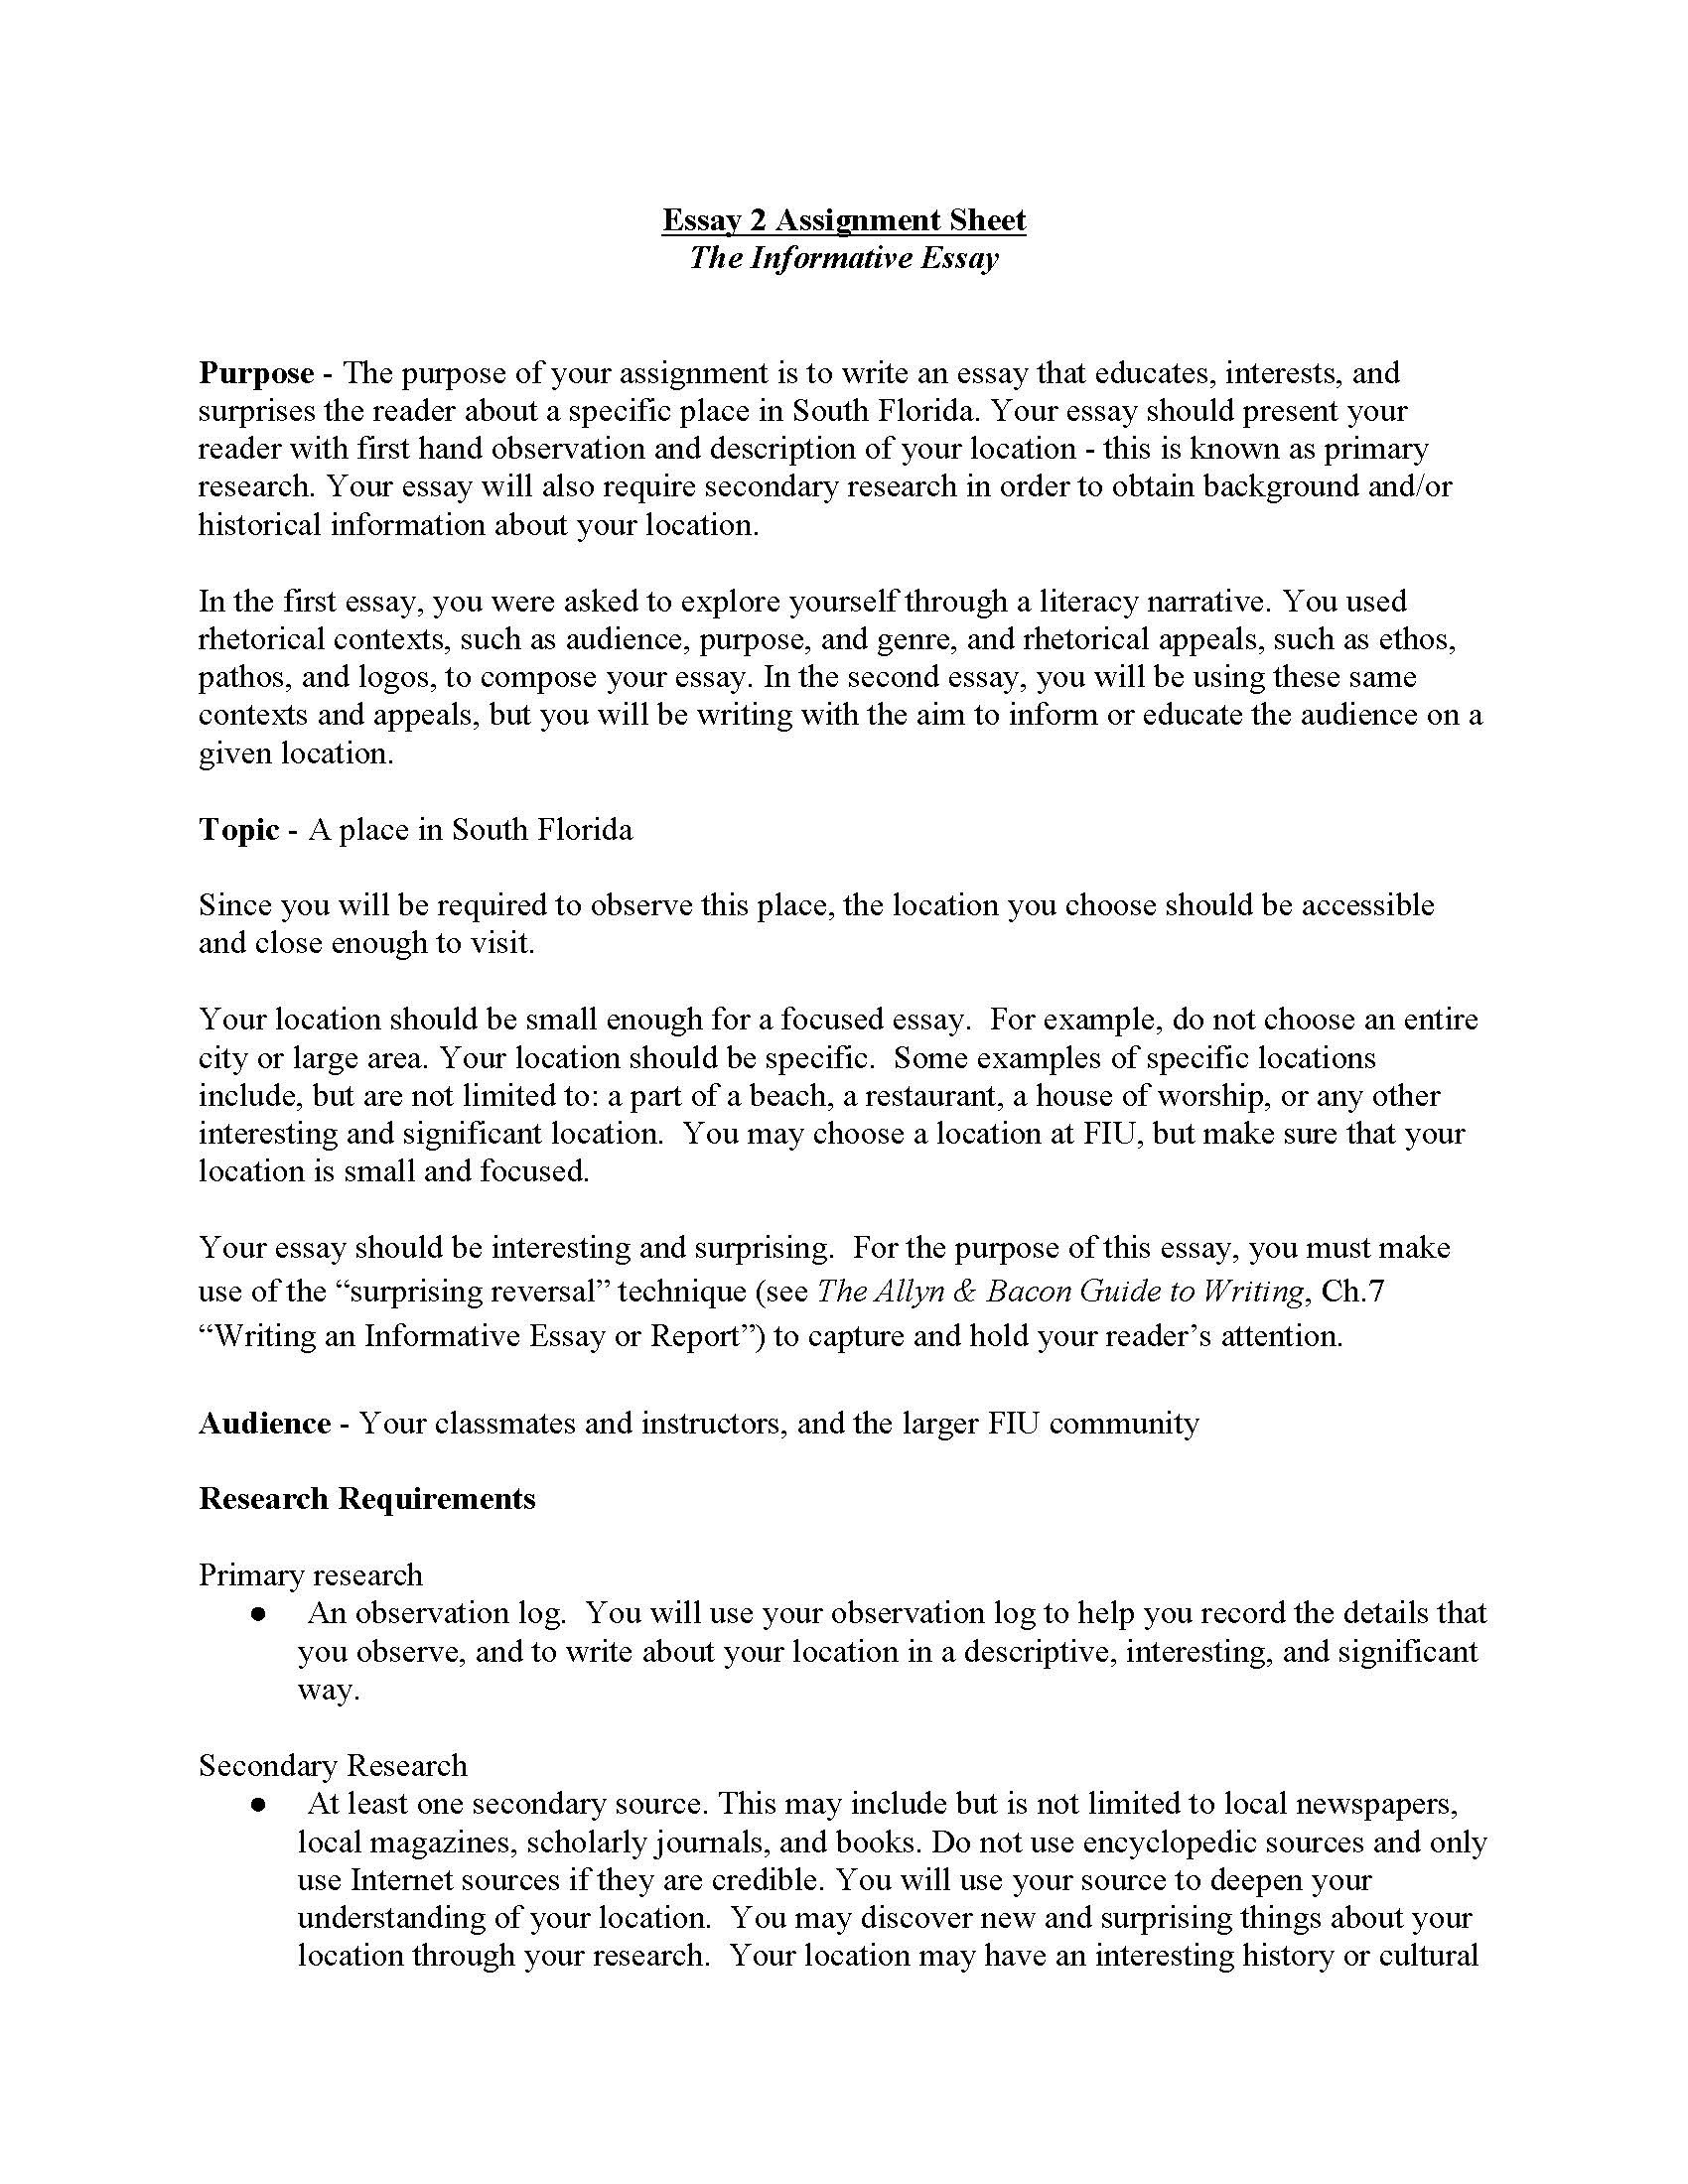 Comma Worksheets High School Pdf Essay Writing Worksheets High School Pdf Activities Teaching